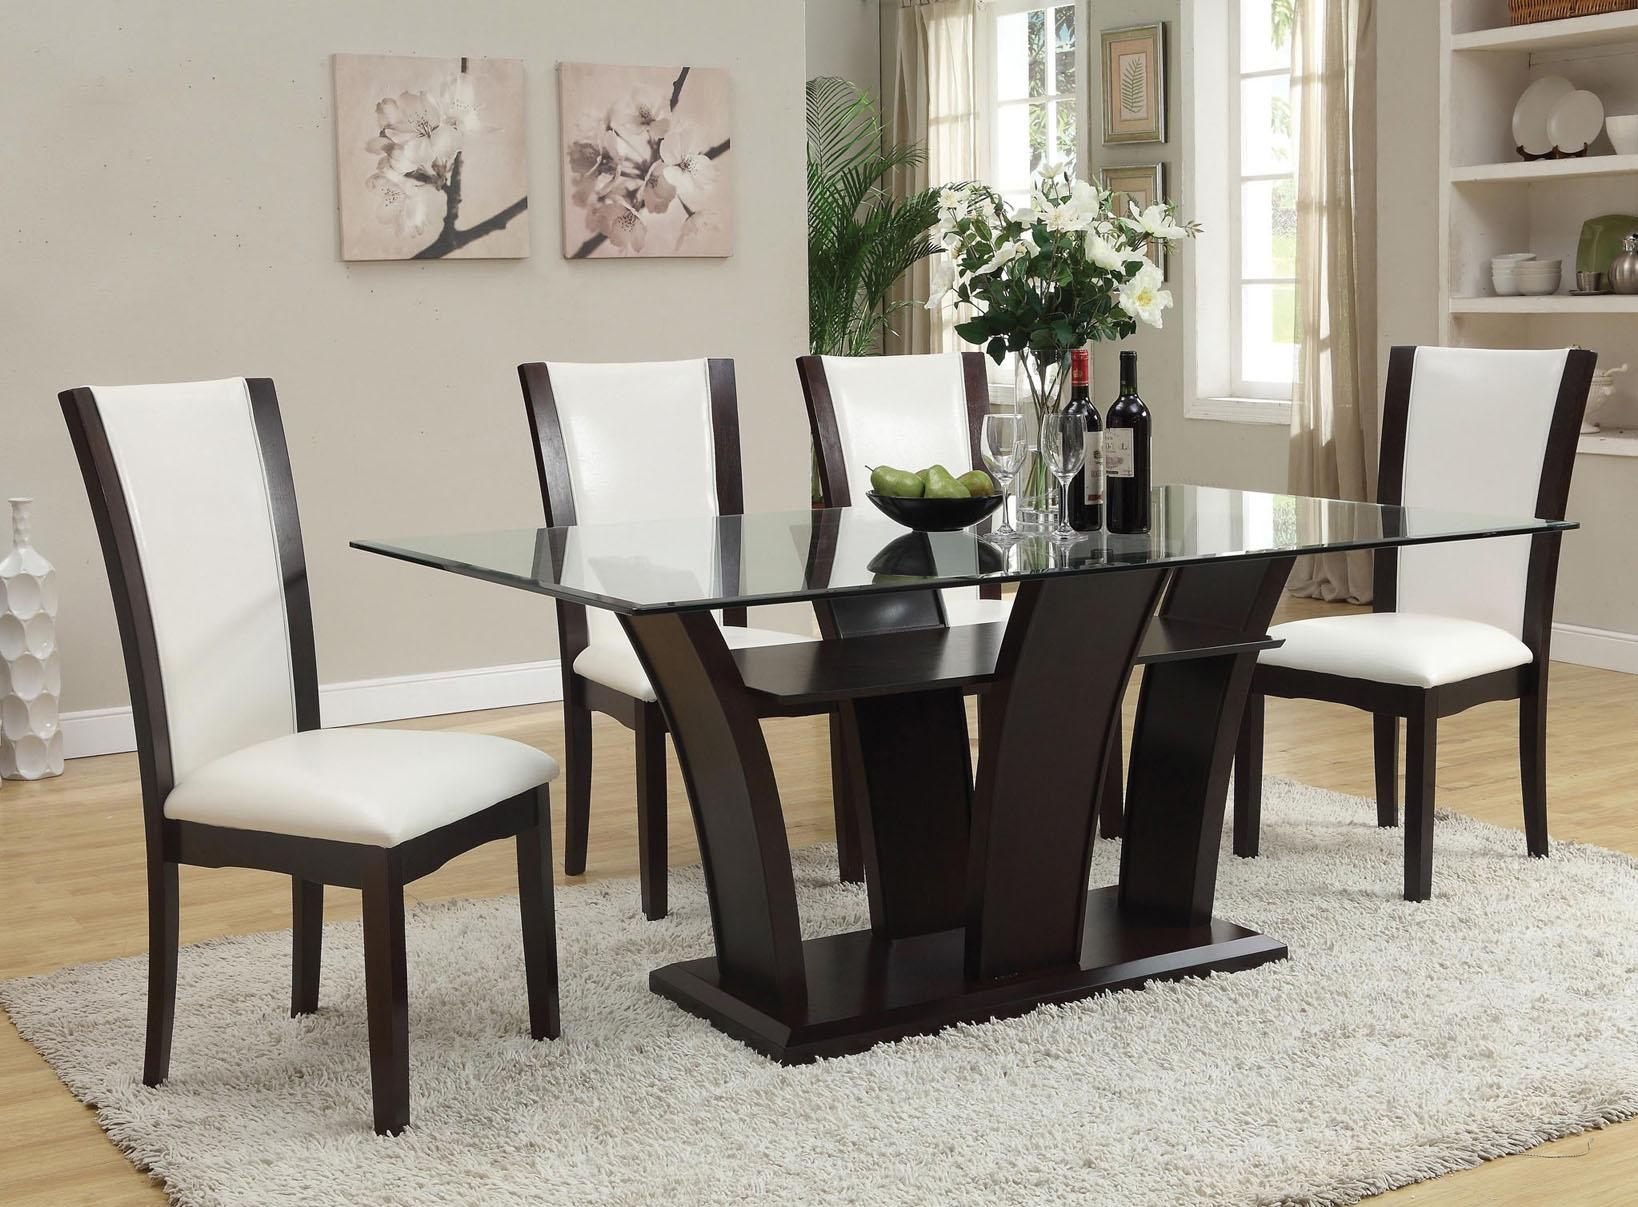 Acme furniture malik contemporary dining table item number 70505